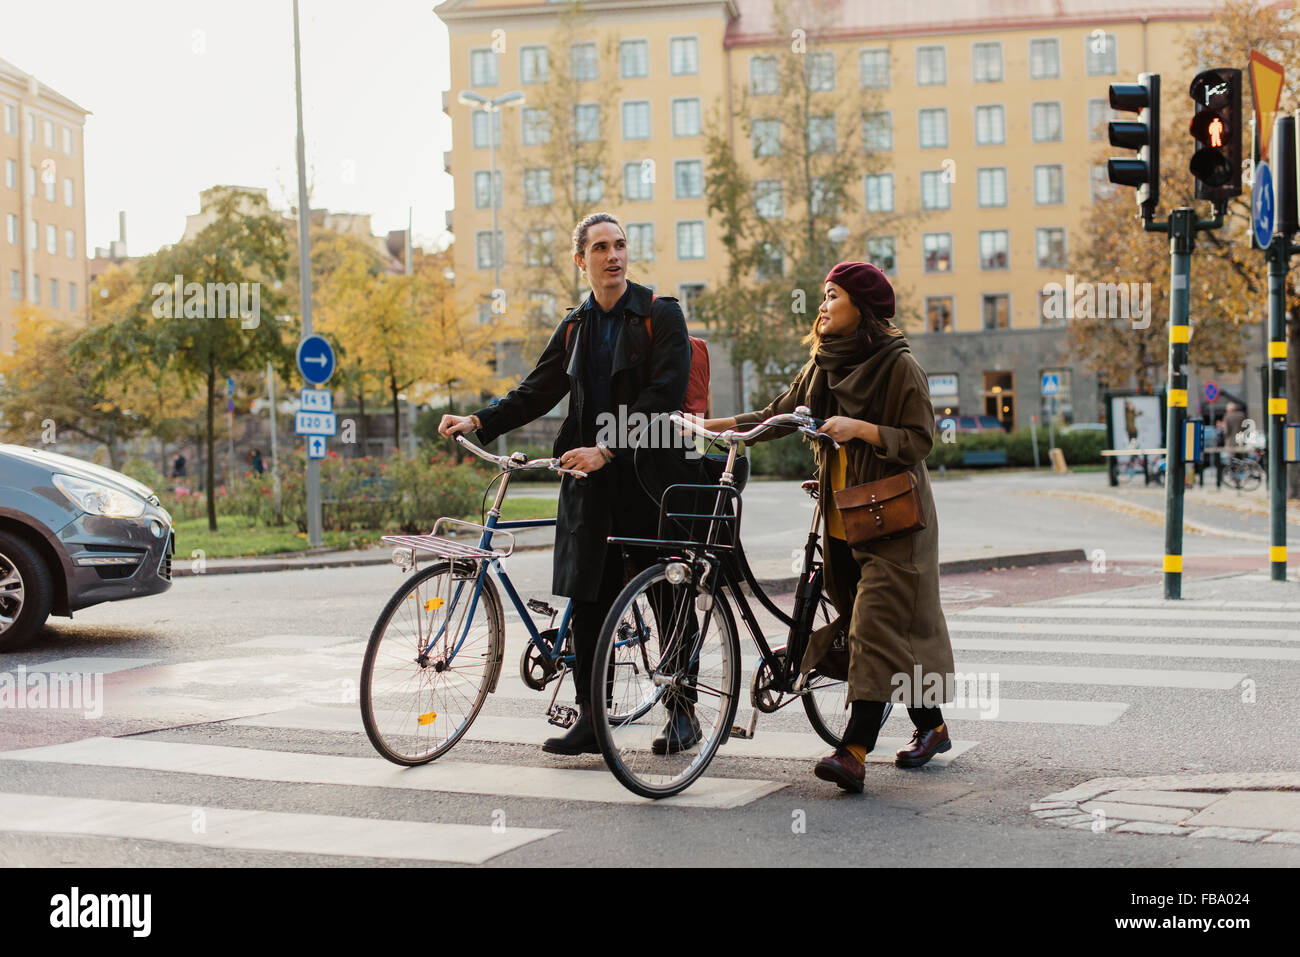 Sweden, Uppland, Stockholm, Vasastan, Vanadisplan, Two young people with bicycles walking through zebra crossing - Stock Image